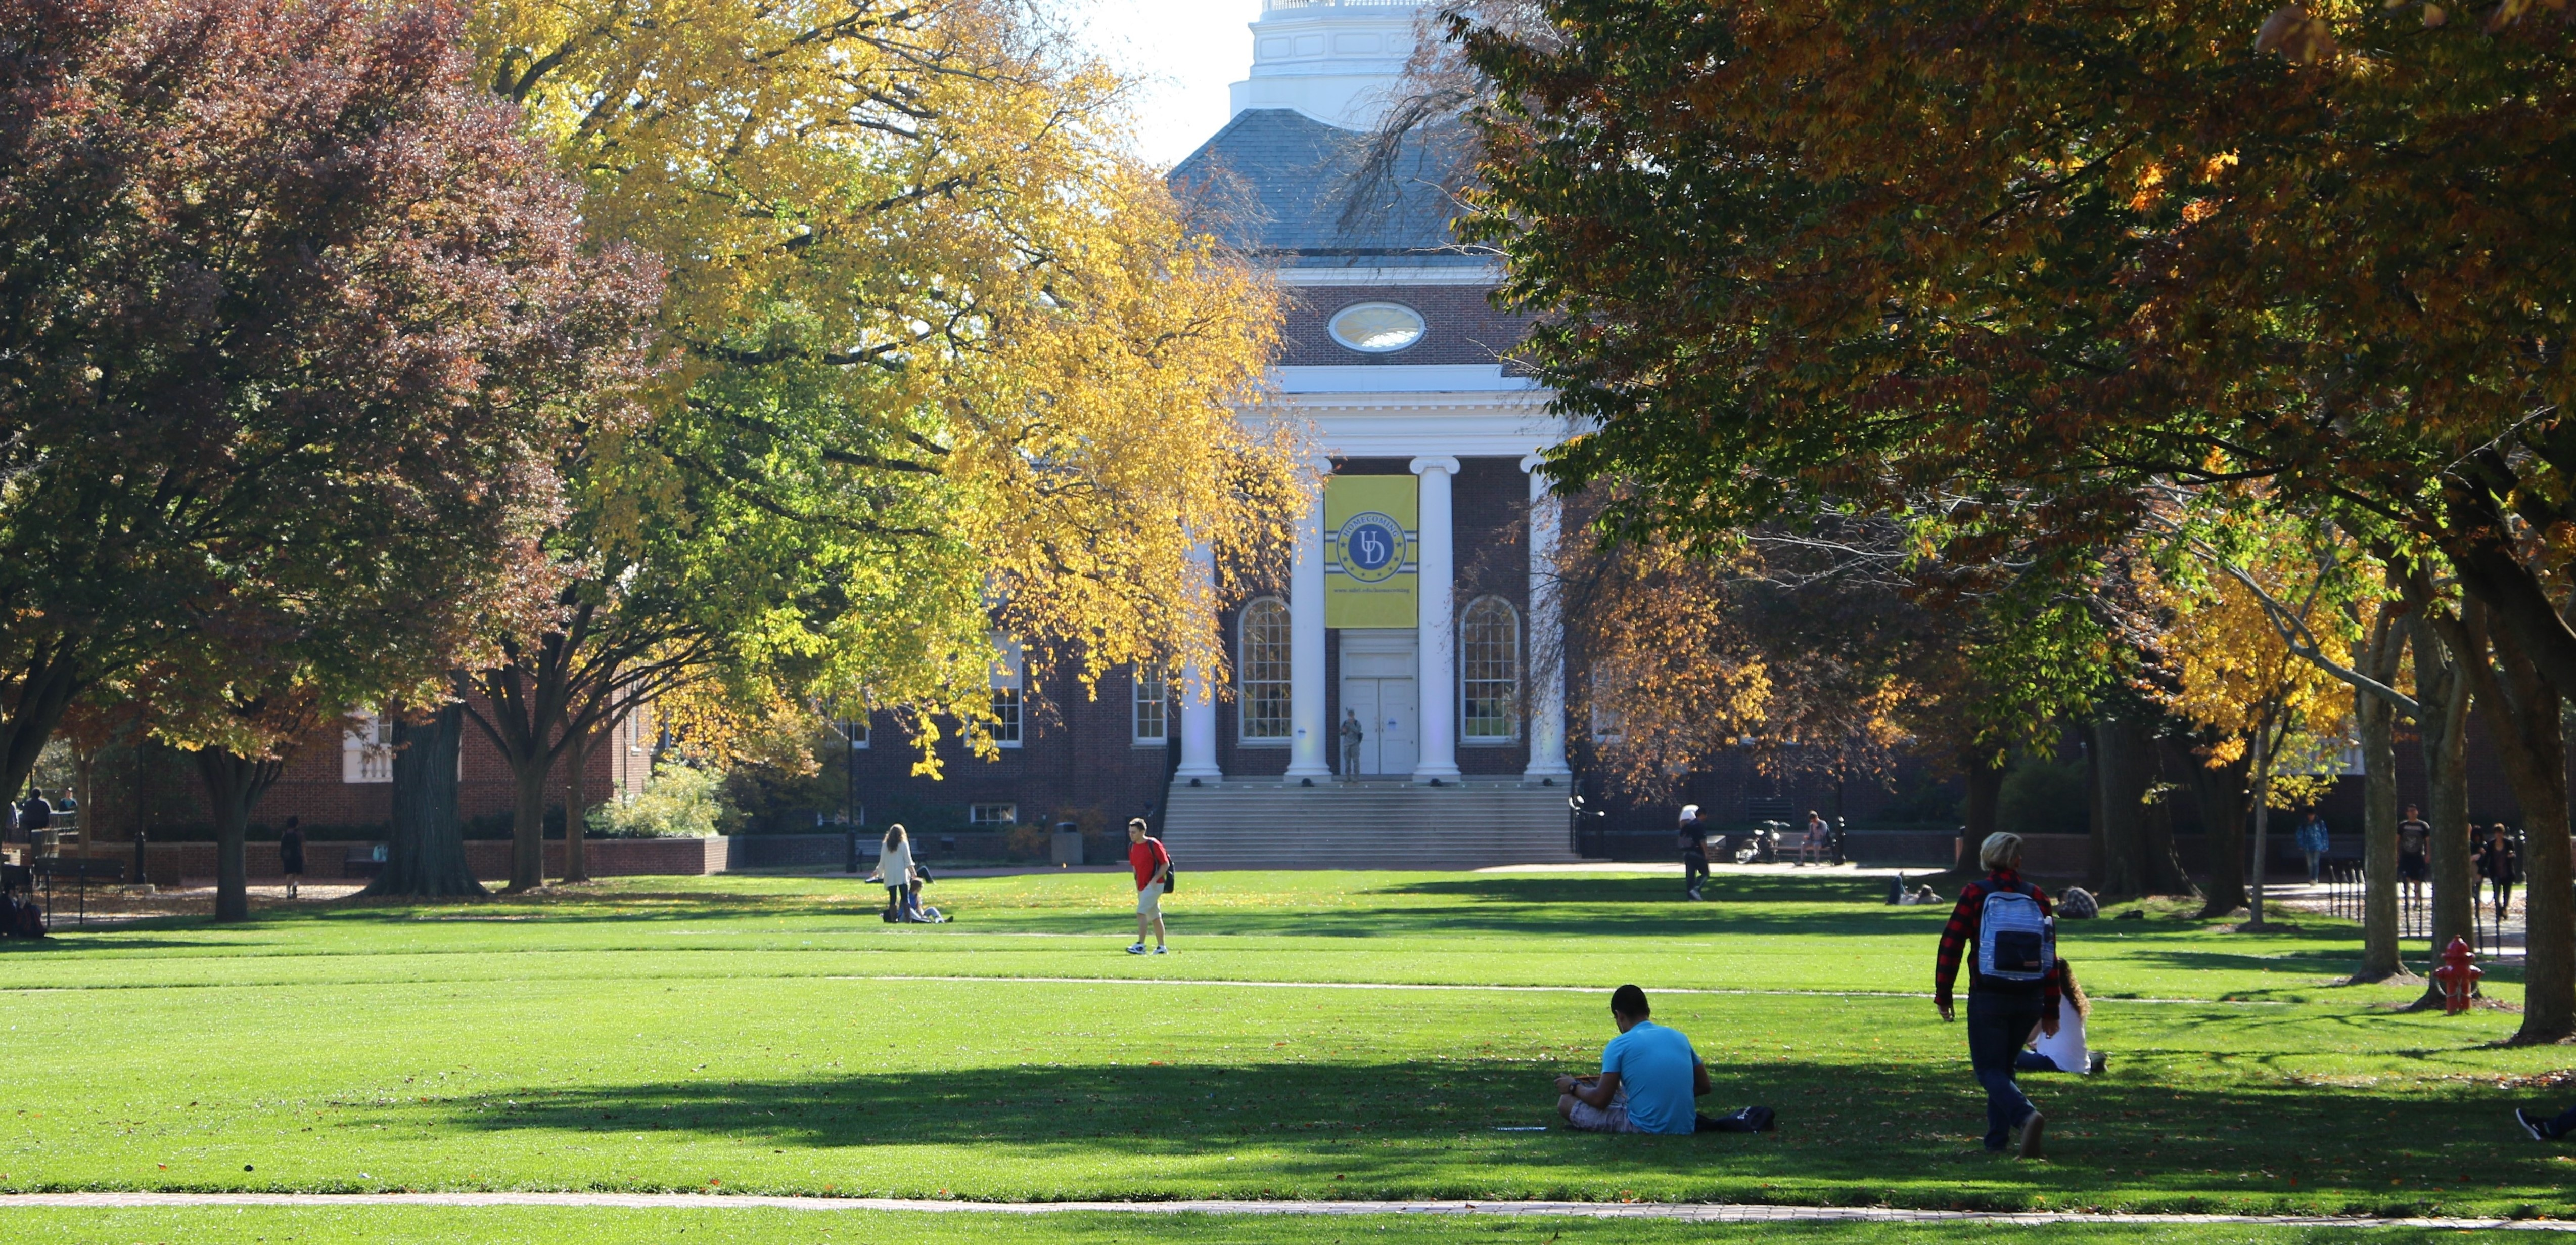 This image shows Memorial Hall and UD's Green during the Fall.